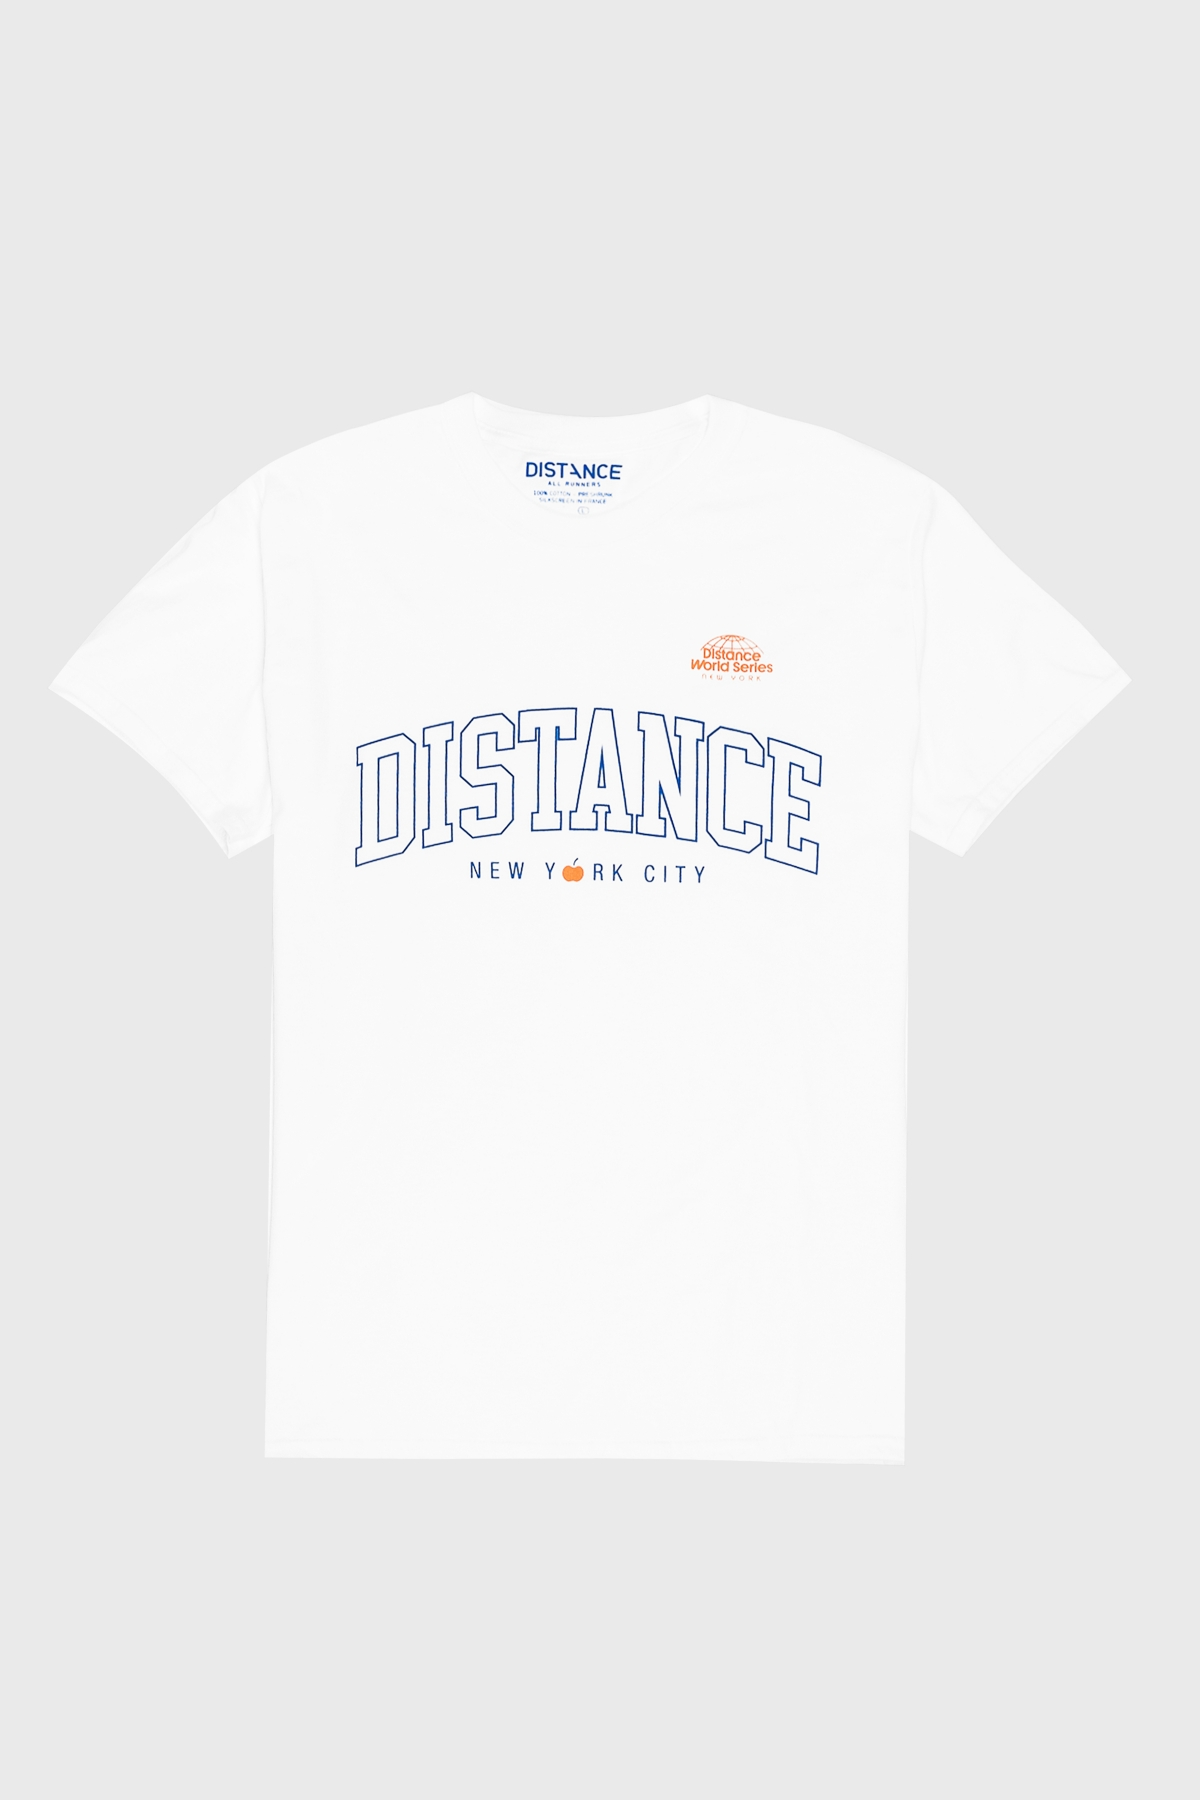 Distance - world Series - New York